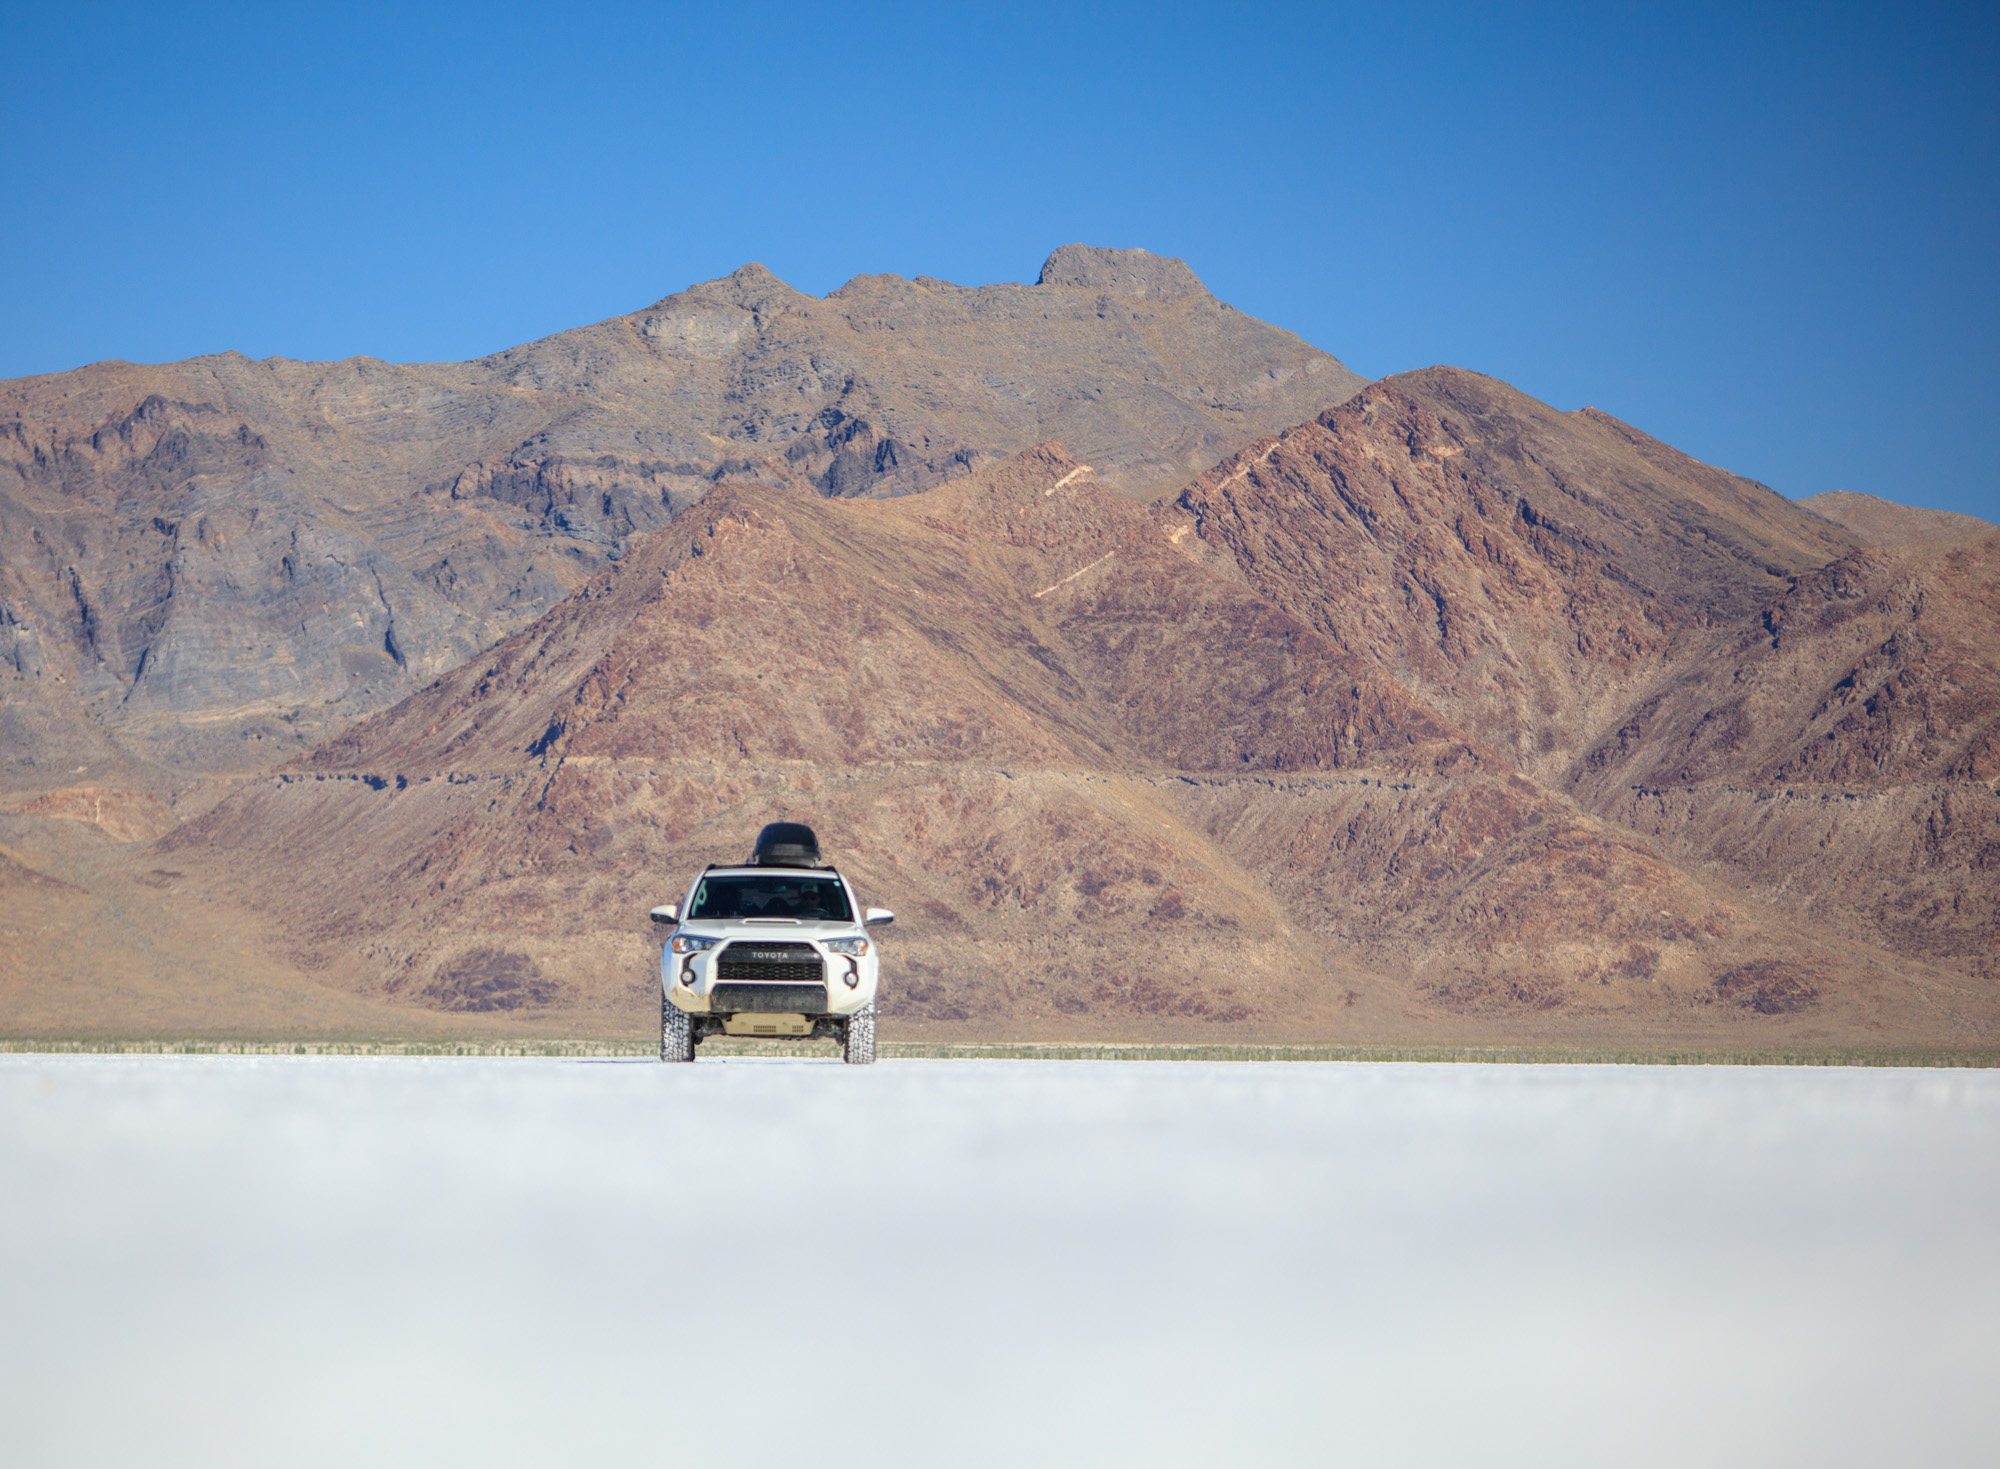 Toyota 4runner on the Bonneville Salt Flats in Utah with mountains in the background.